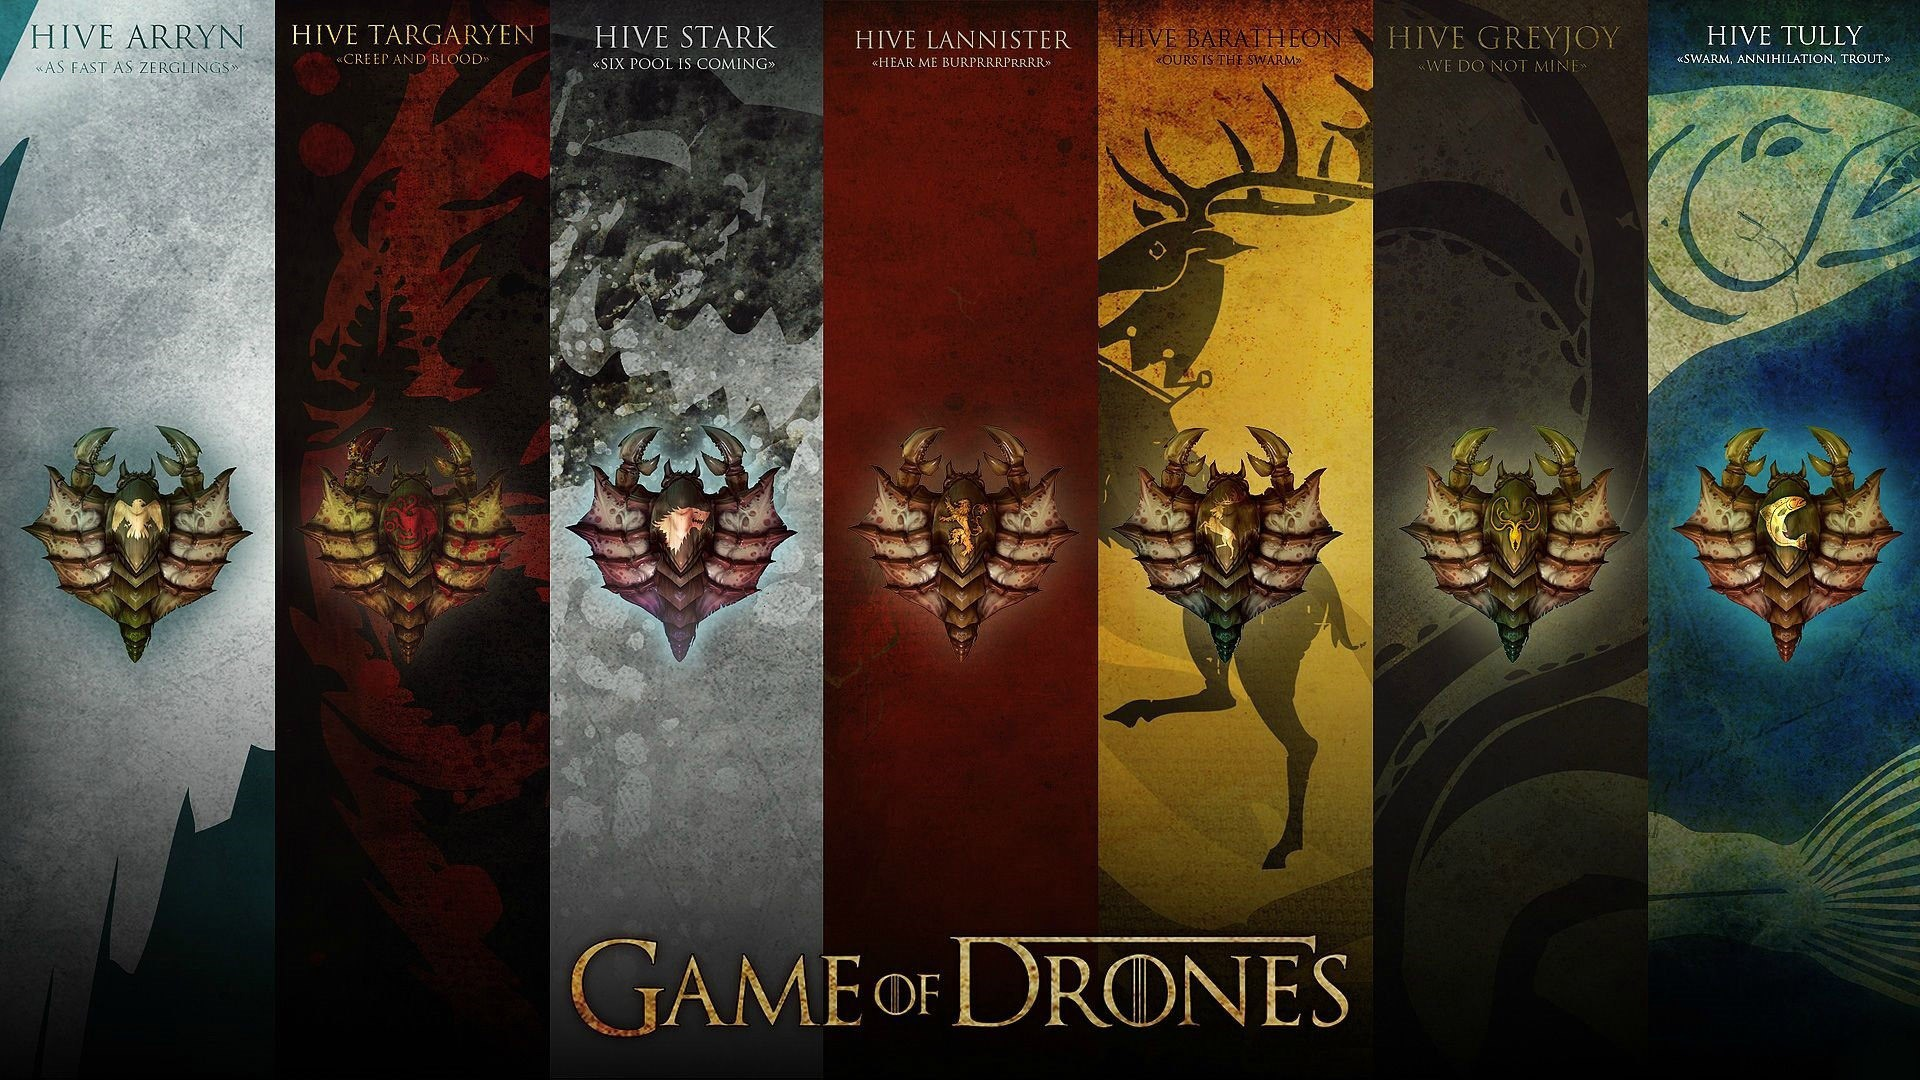 Hd Wallpapers Backgrounds For Game Of Thrones Free For: Game Of Thrones Desktop Wallpaper ·① Download Free